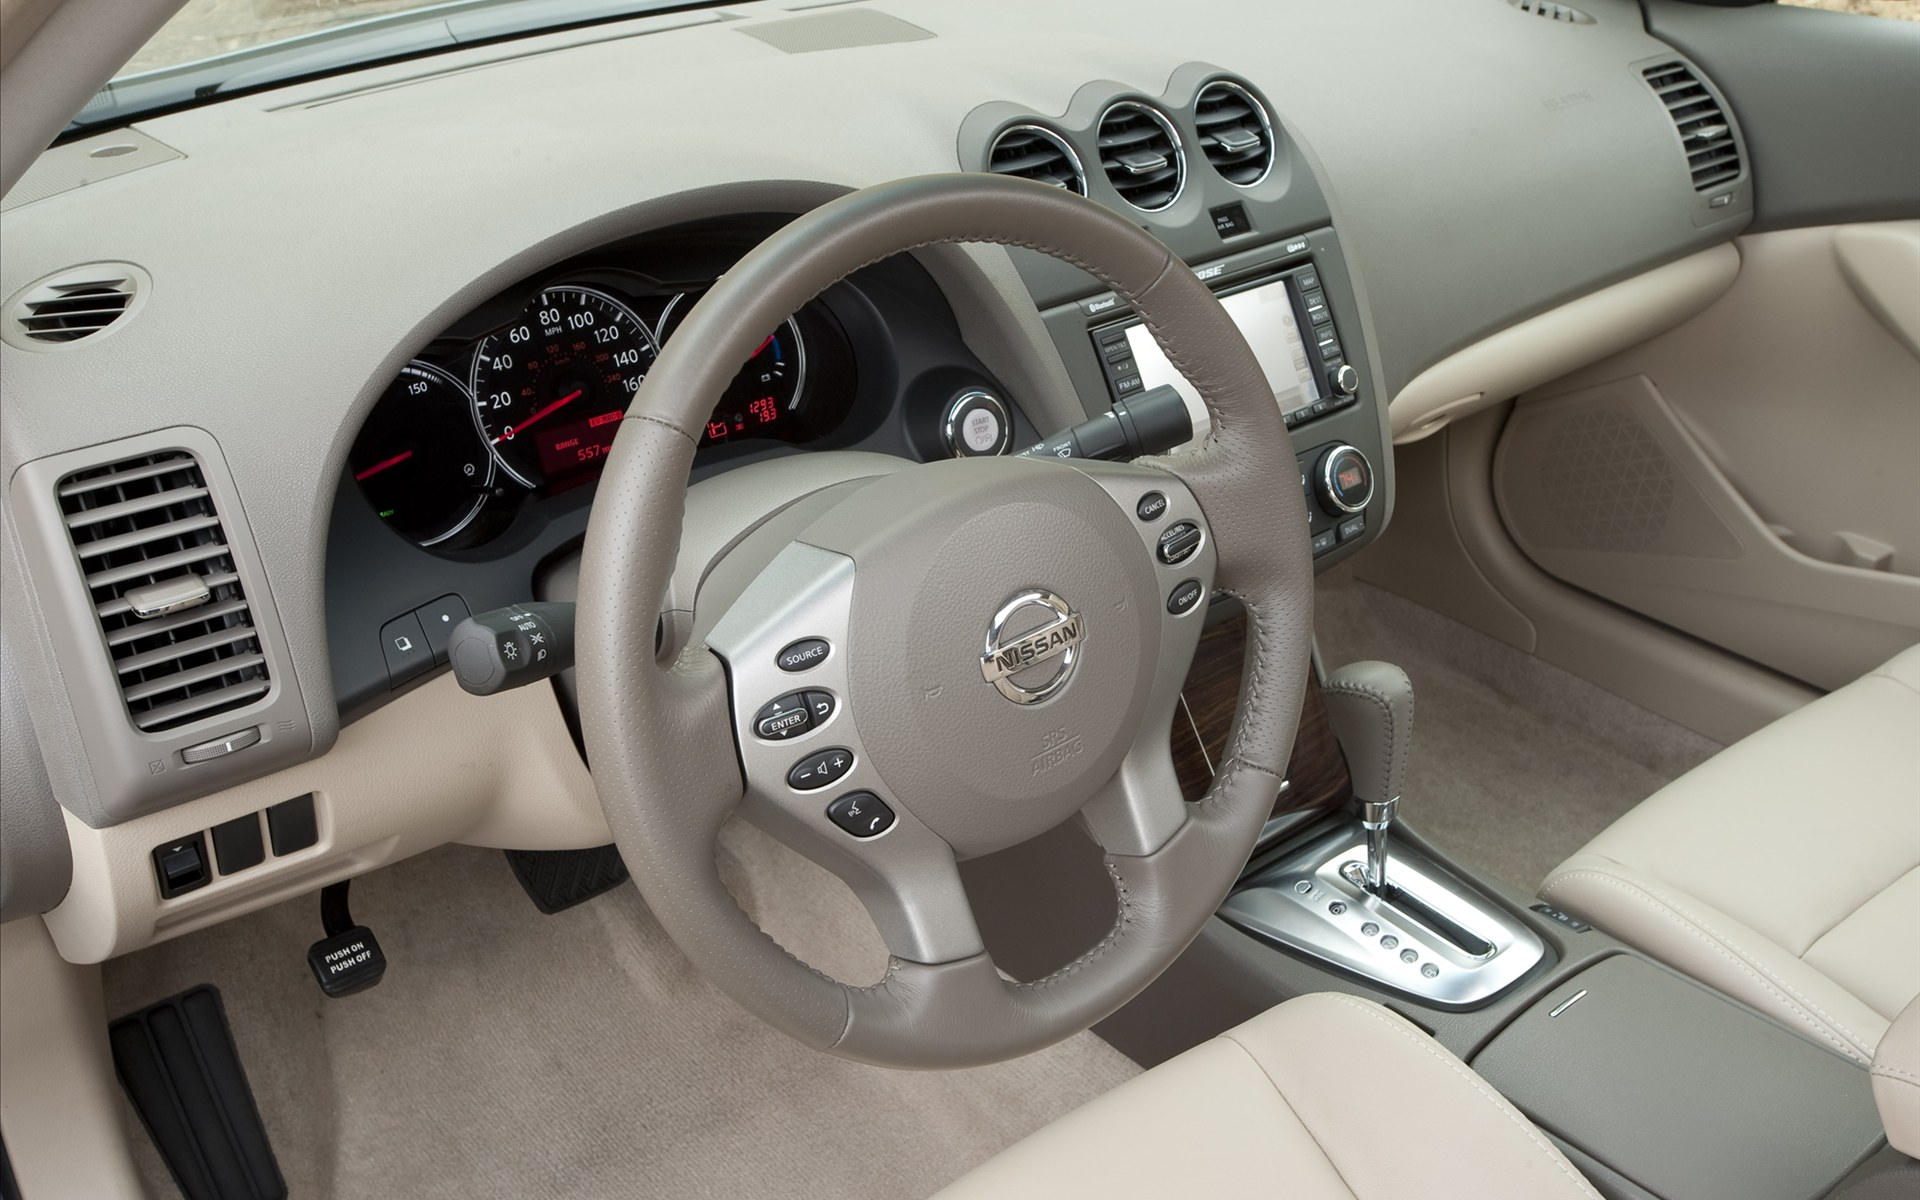 2009 Altima Interior Nissan Review You Used